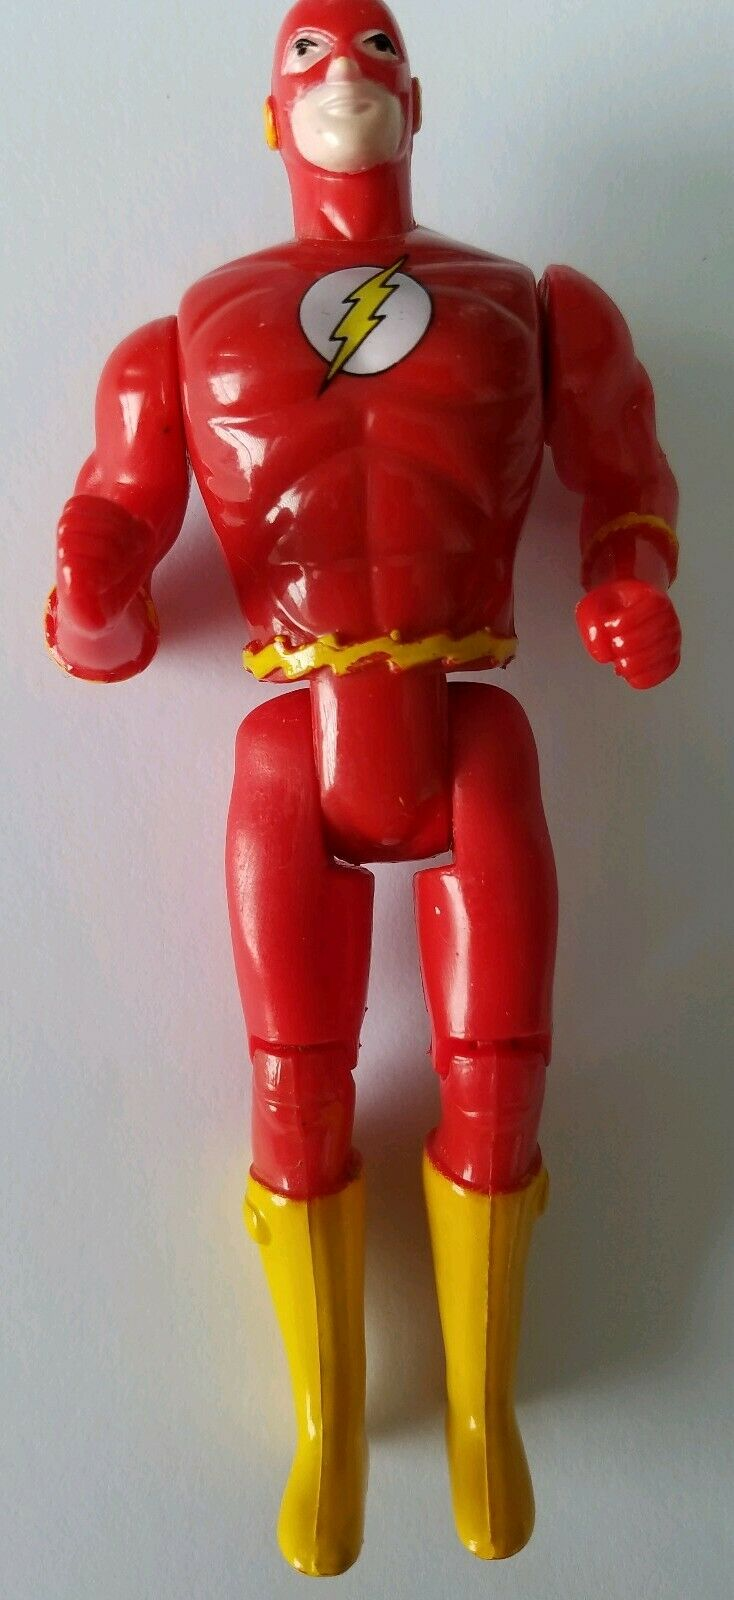 The Flash Action Figure w Running Arm Movement (ToyBiz, 1990)